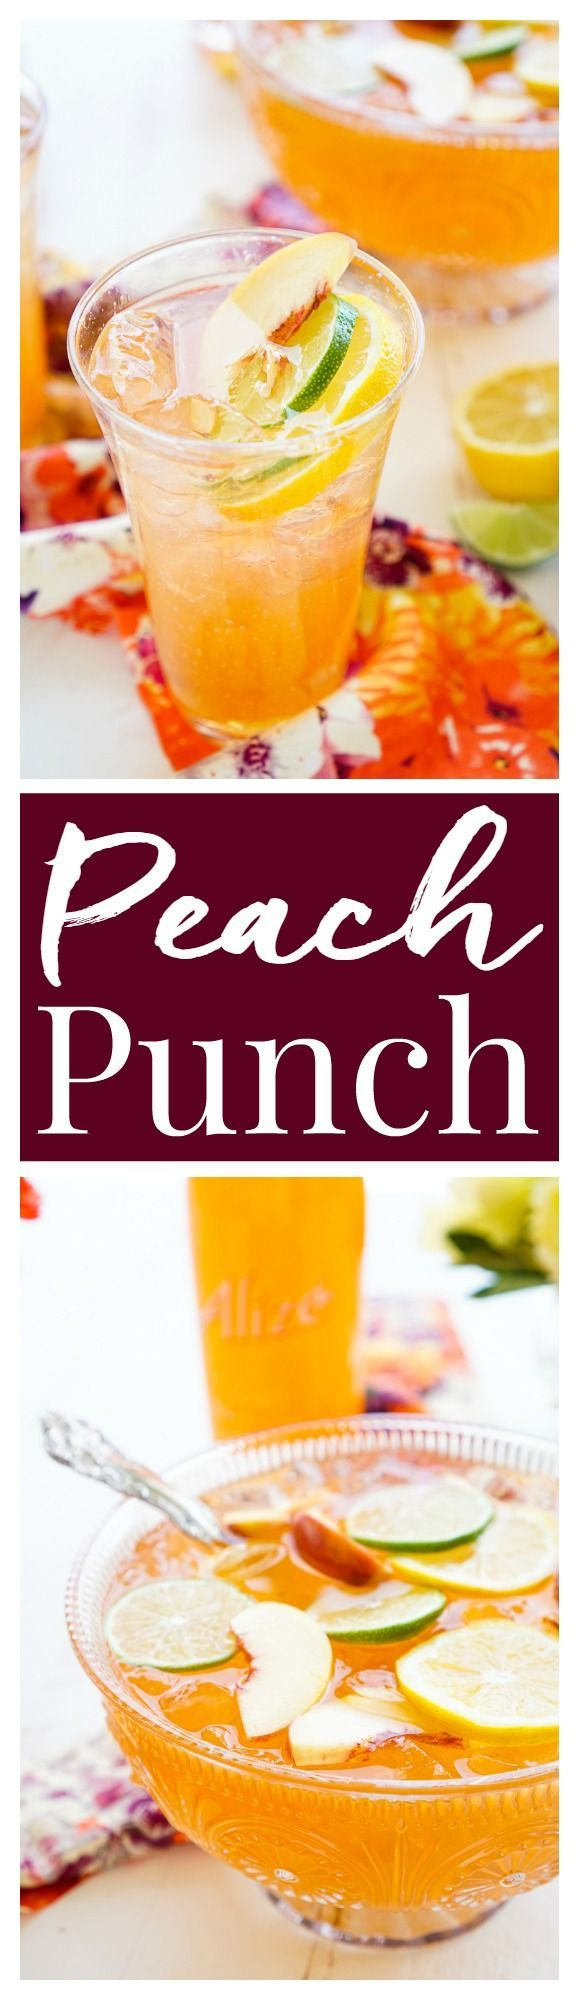 This Spiked Peach Punch is the perfect big batch cocktail for summer! Smooth Alizé Peach vodka blends with white rum, lime juice, and ginger ale for a refreshing and vibrant warm weather beverage! #AlizeInColor #ad